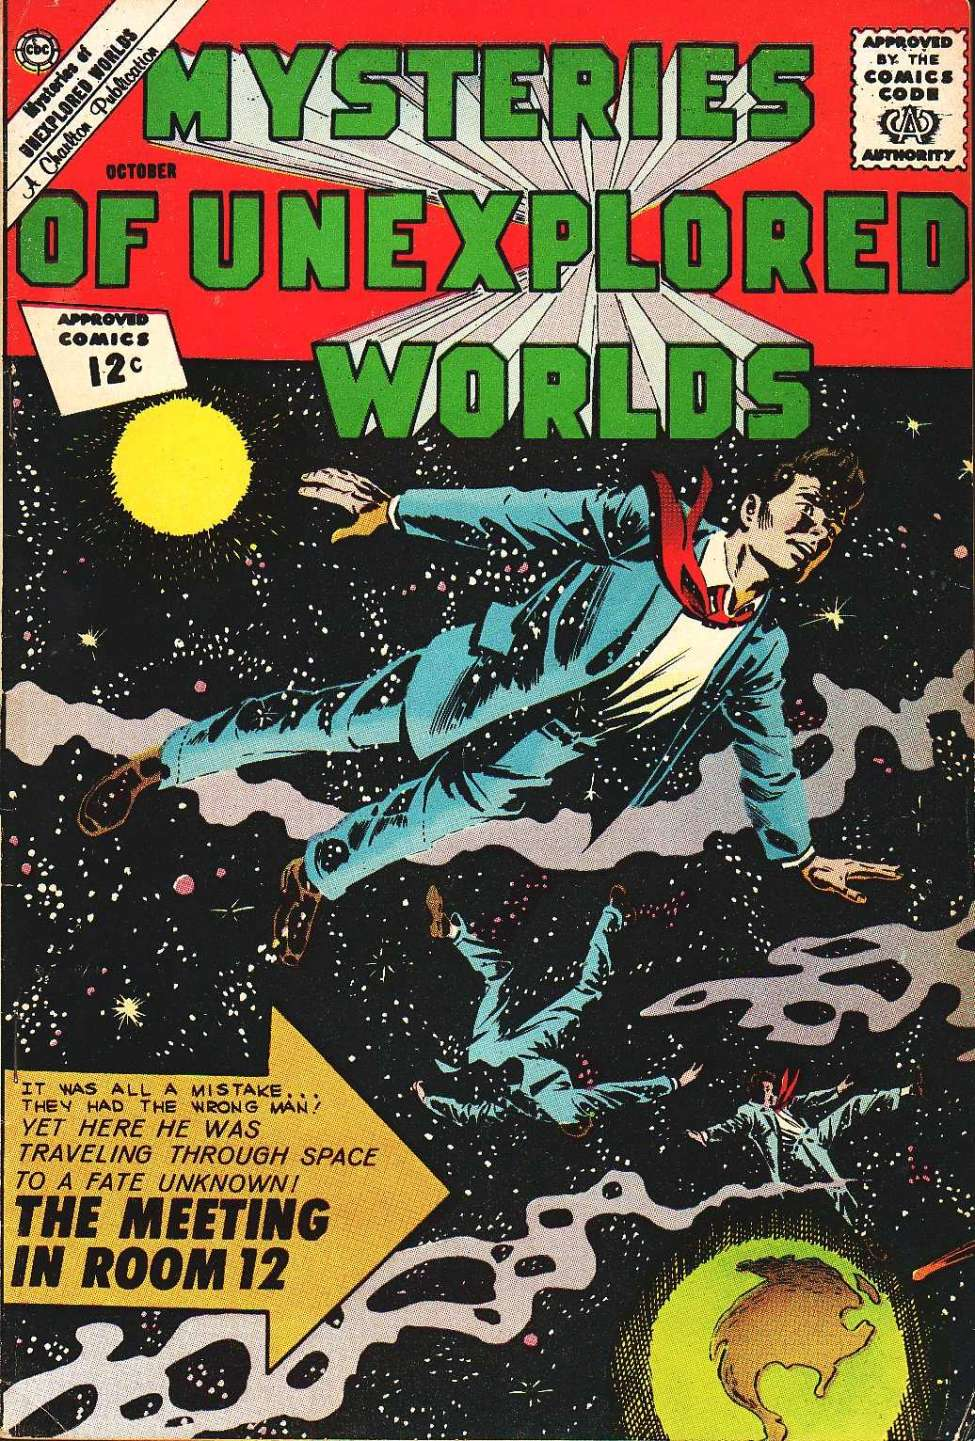 Comic Book Cover For Mysteries of Unexplored Worlds #32